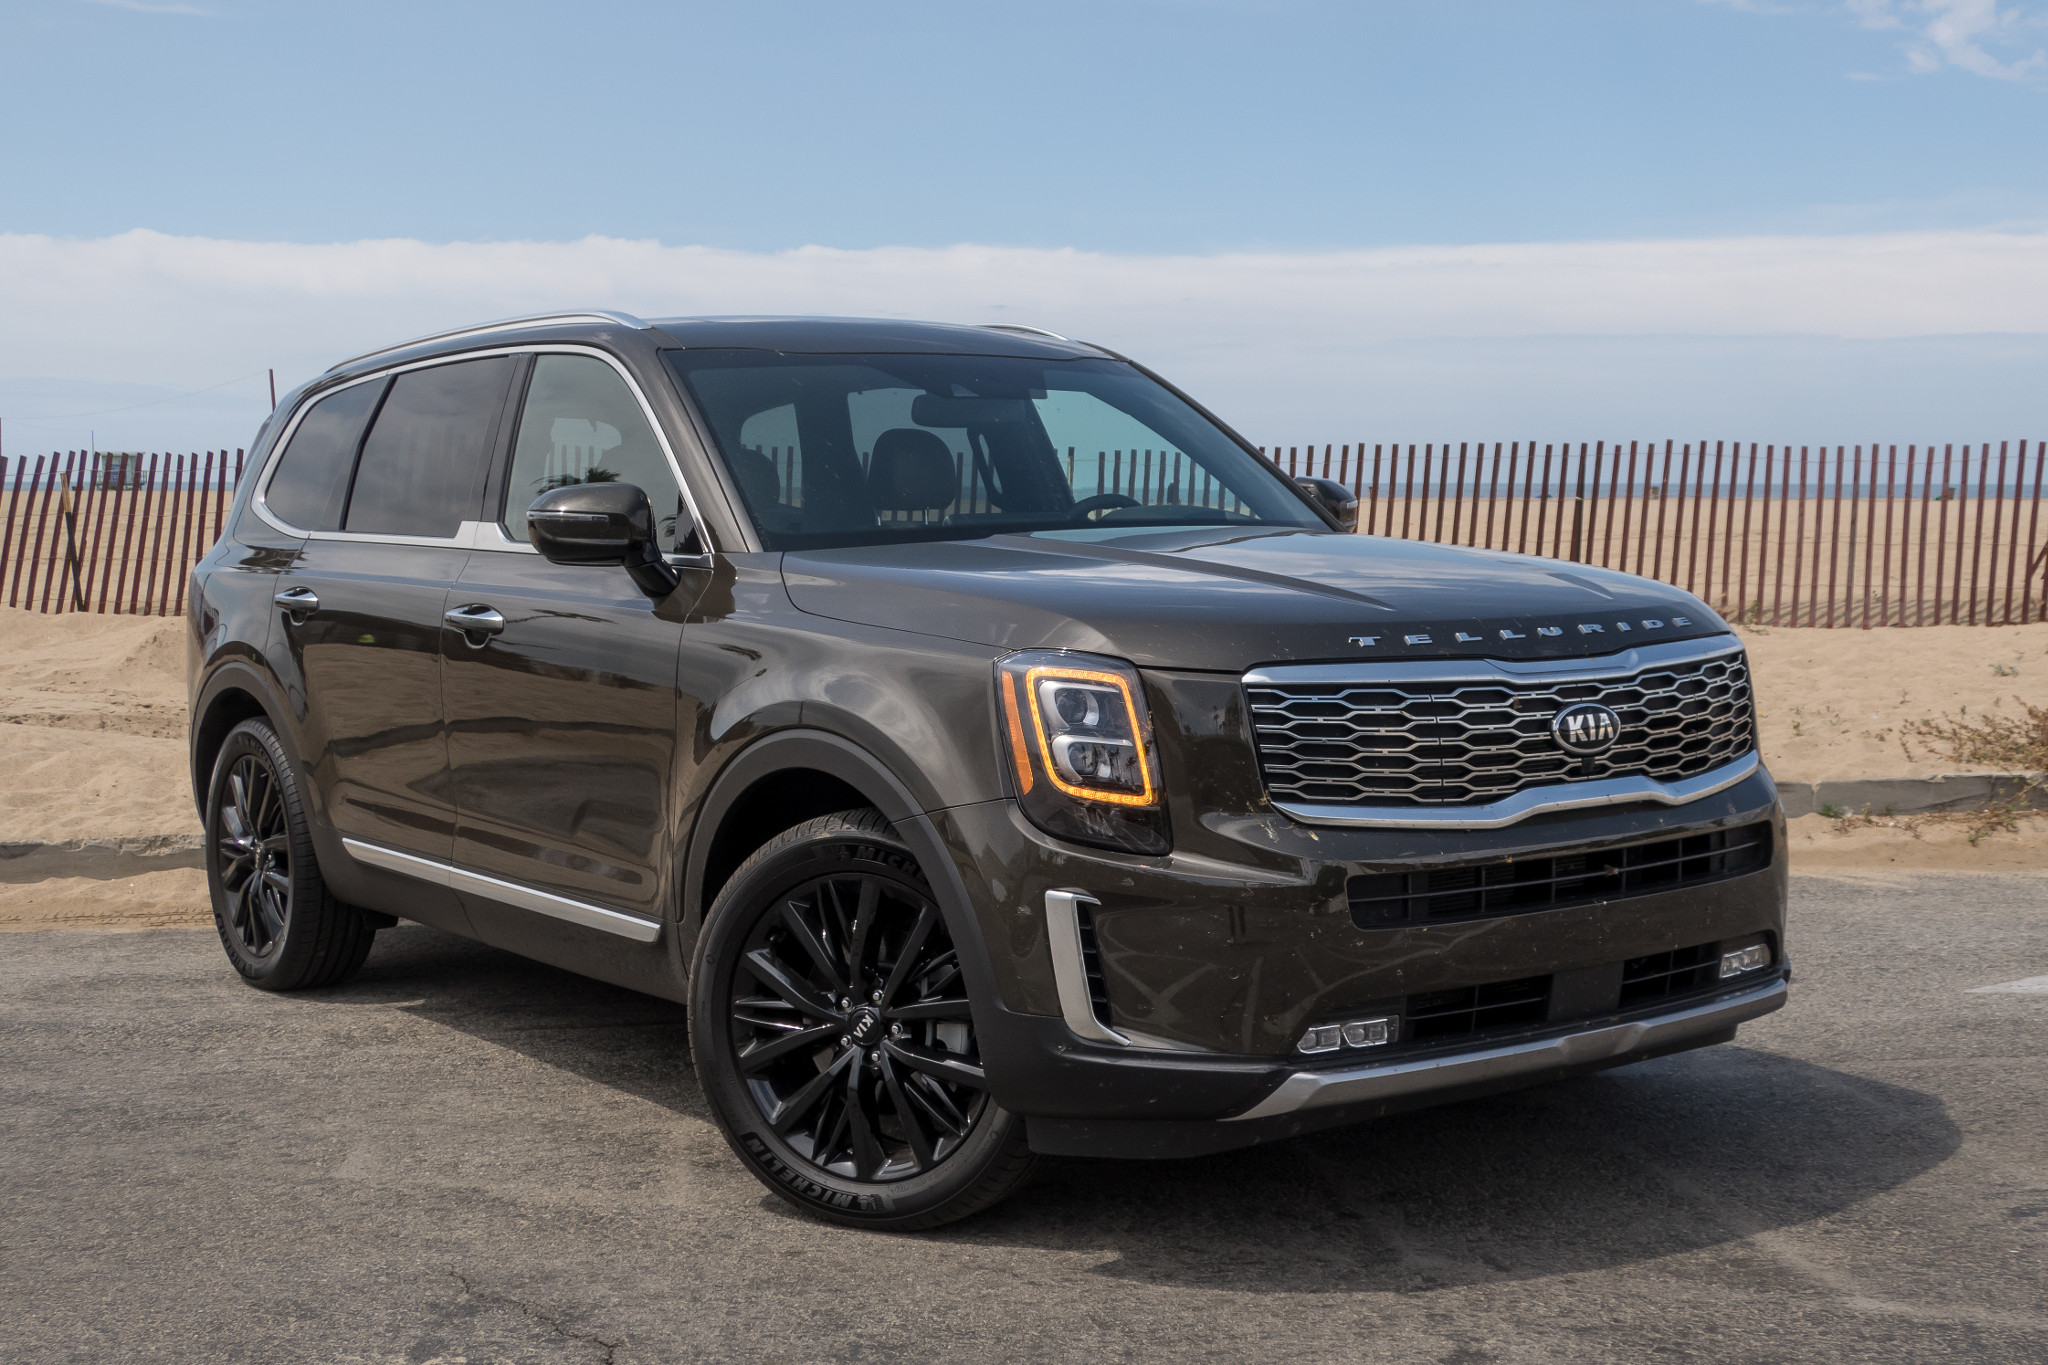 2020 Kia Telluride 6 Things We Like And 2 Not So Much News